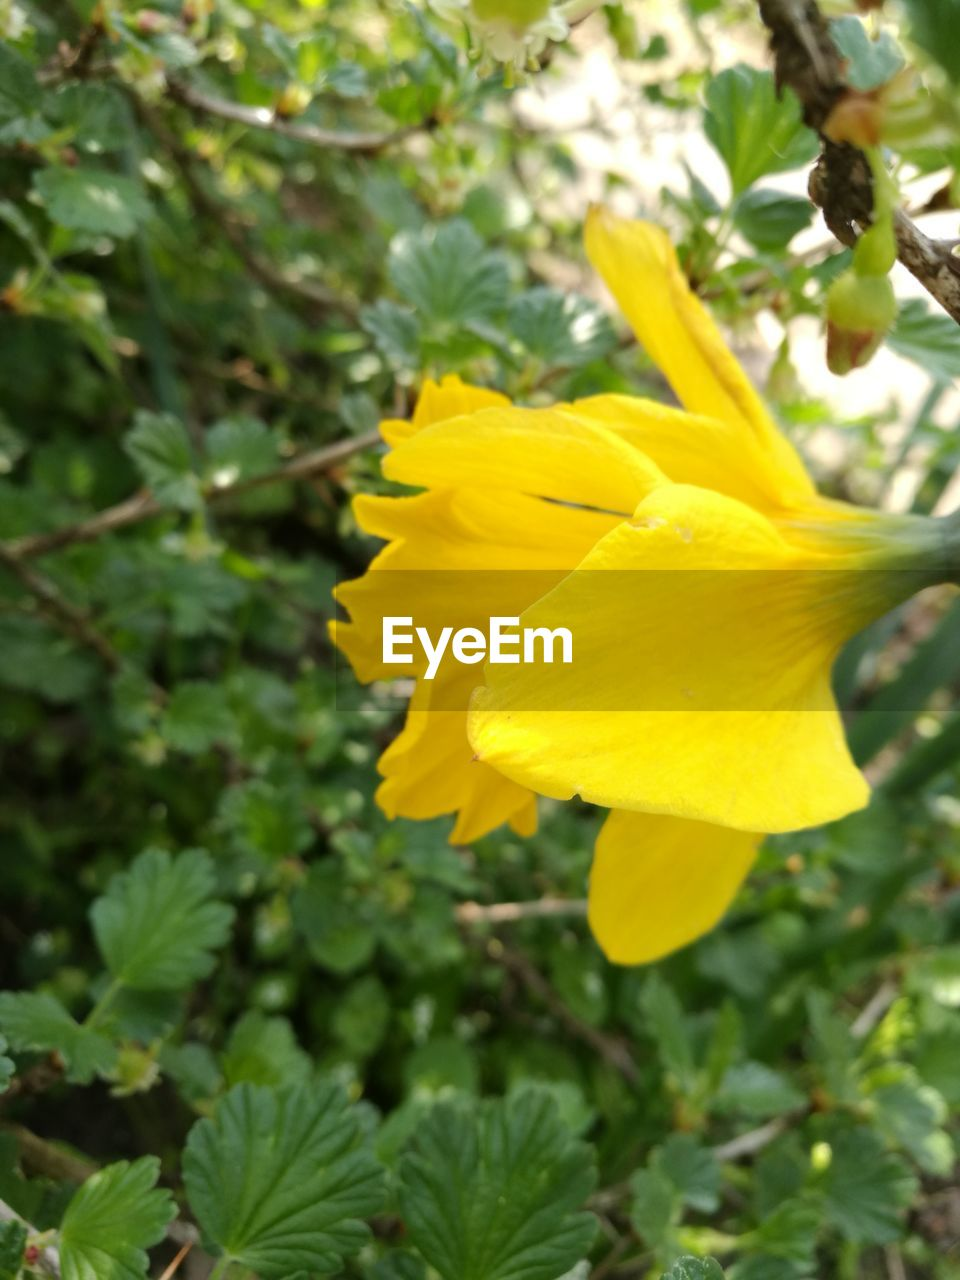 yellow, flower, petal, growth, nature, fragility, beauty in nature, freshness, plant, botany, flower head, green color, day, leaf, outdoors, blossom, no people, springtime, blooming, close-up